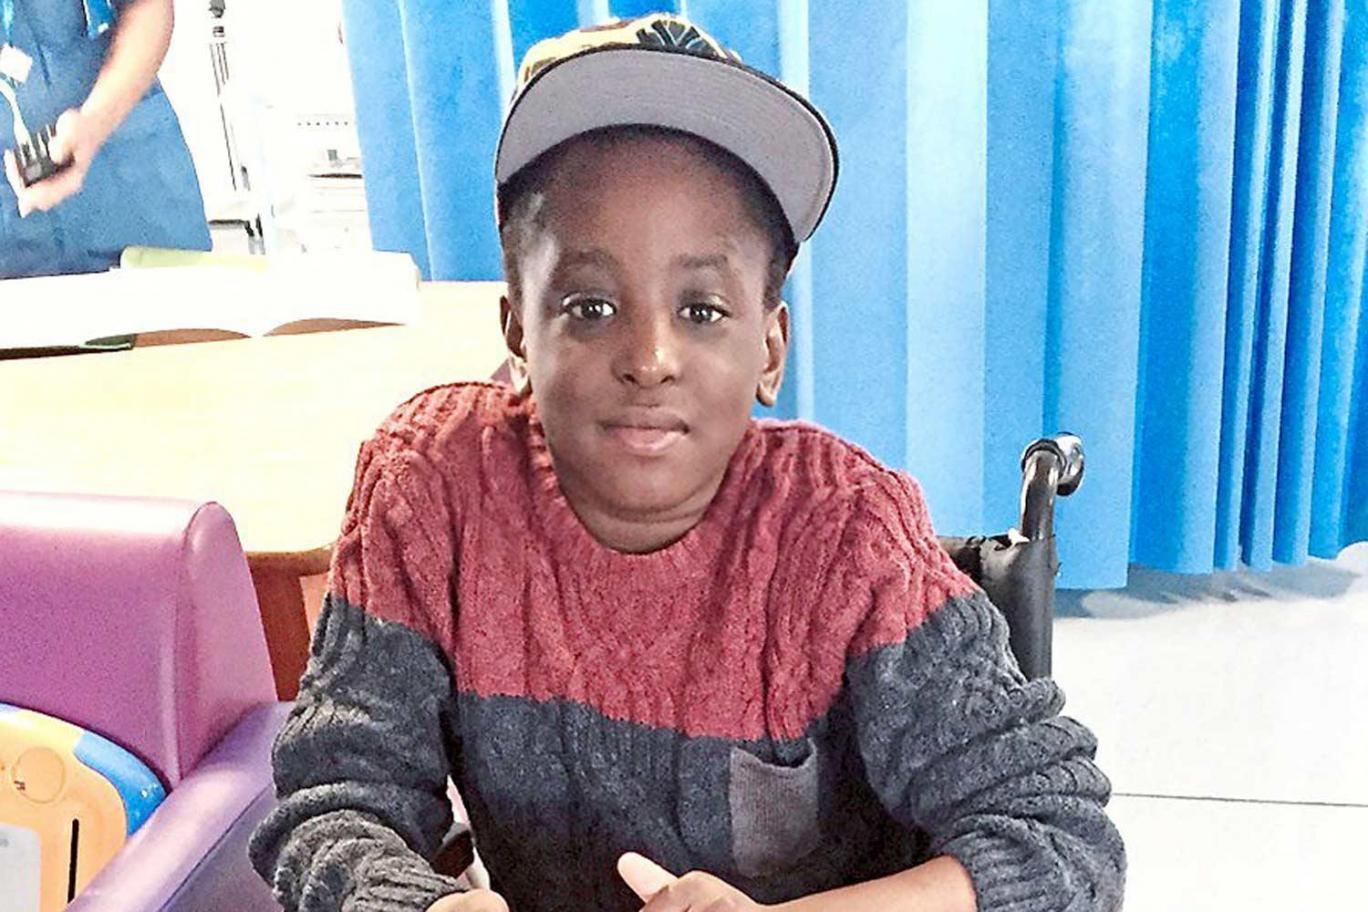 Appeal for hit and run driver who left 11-year-old for dead